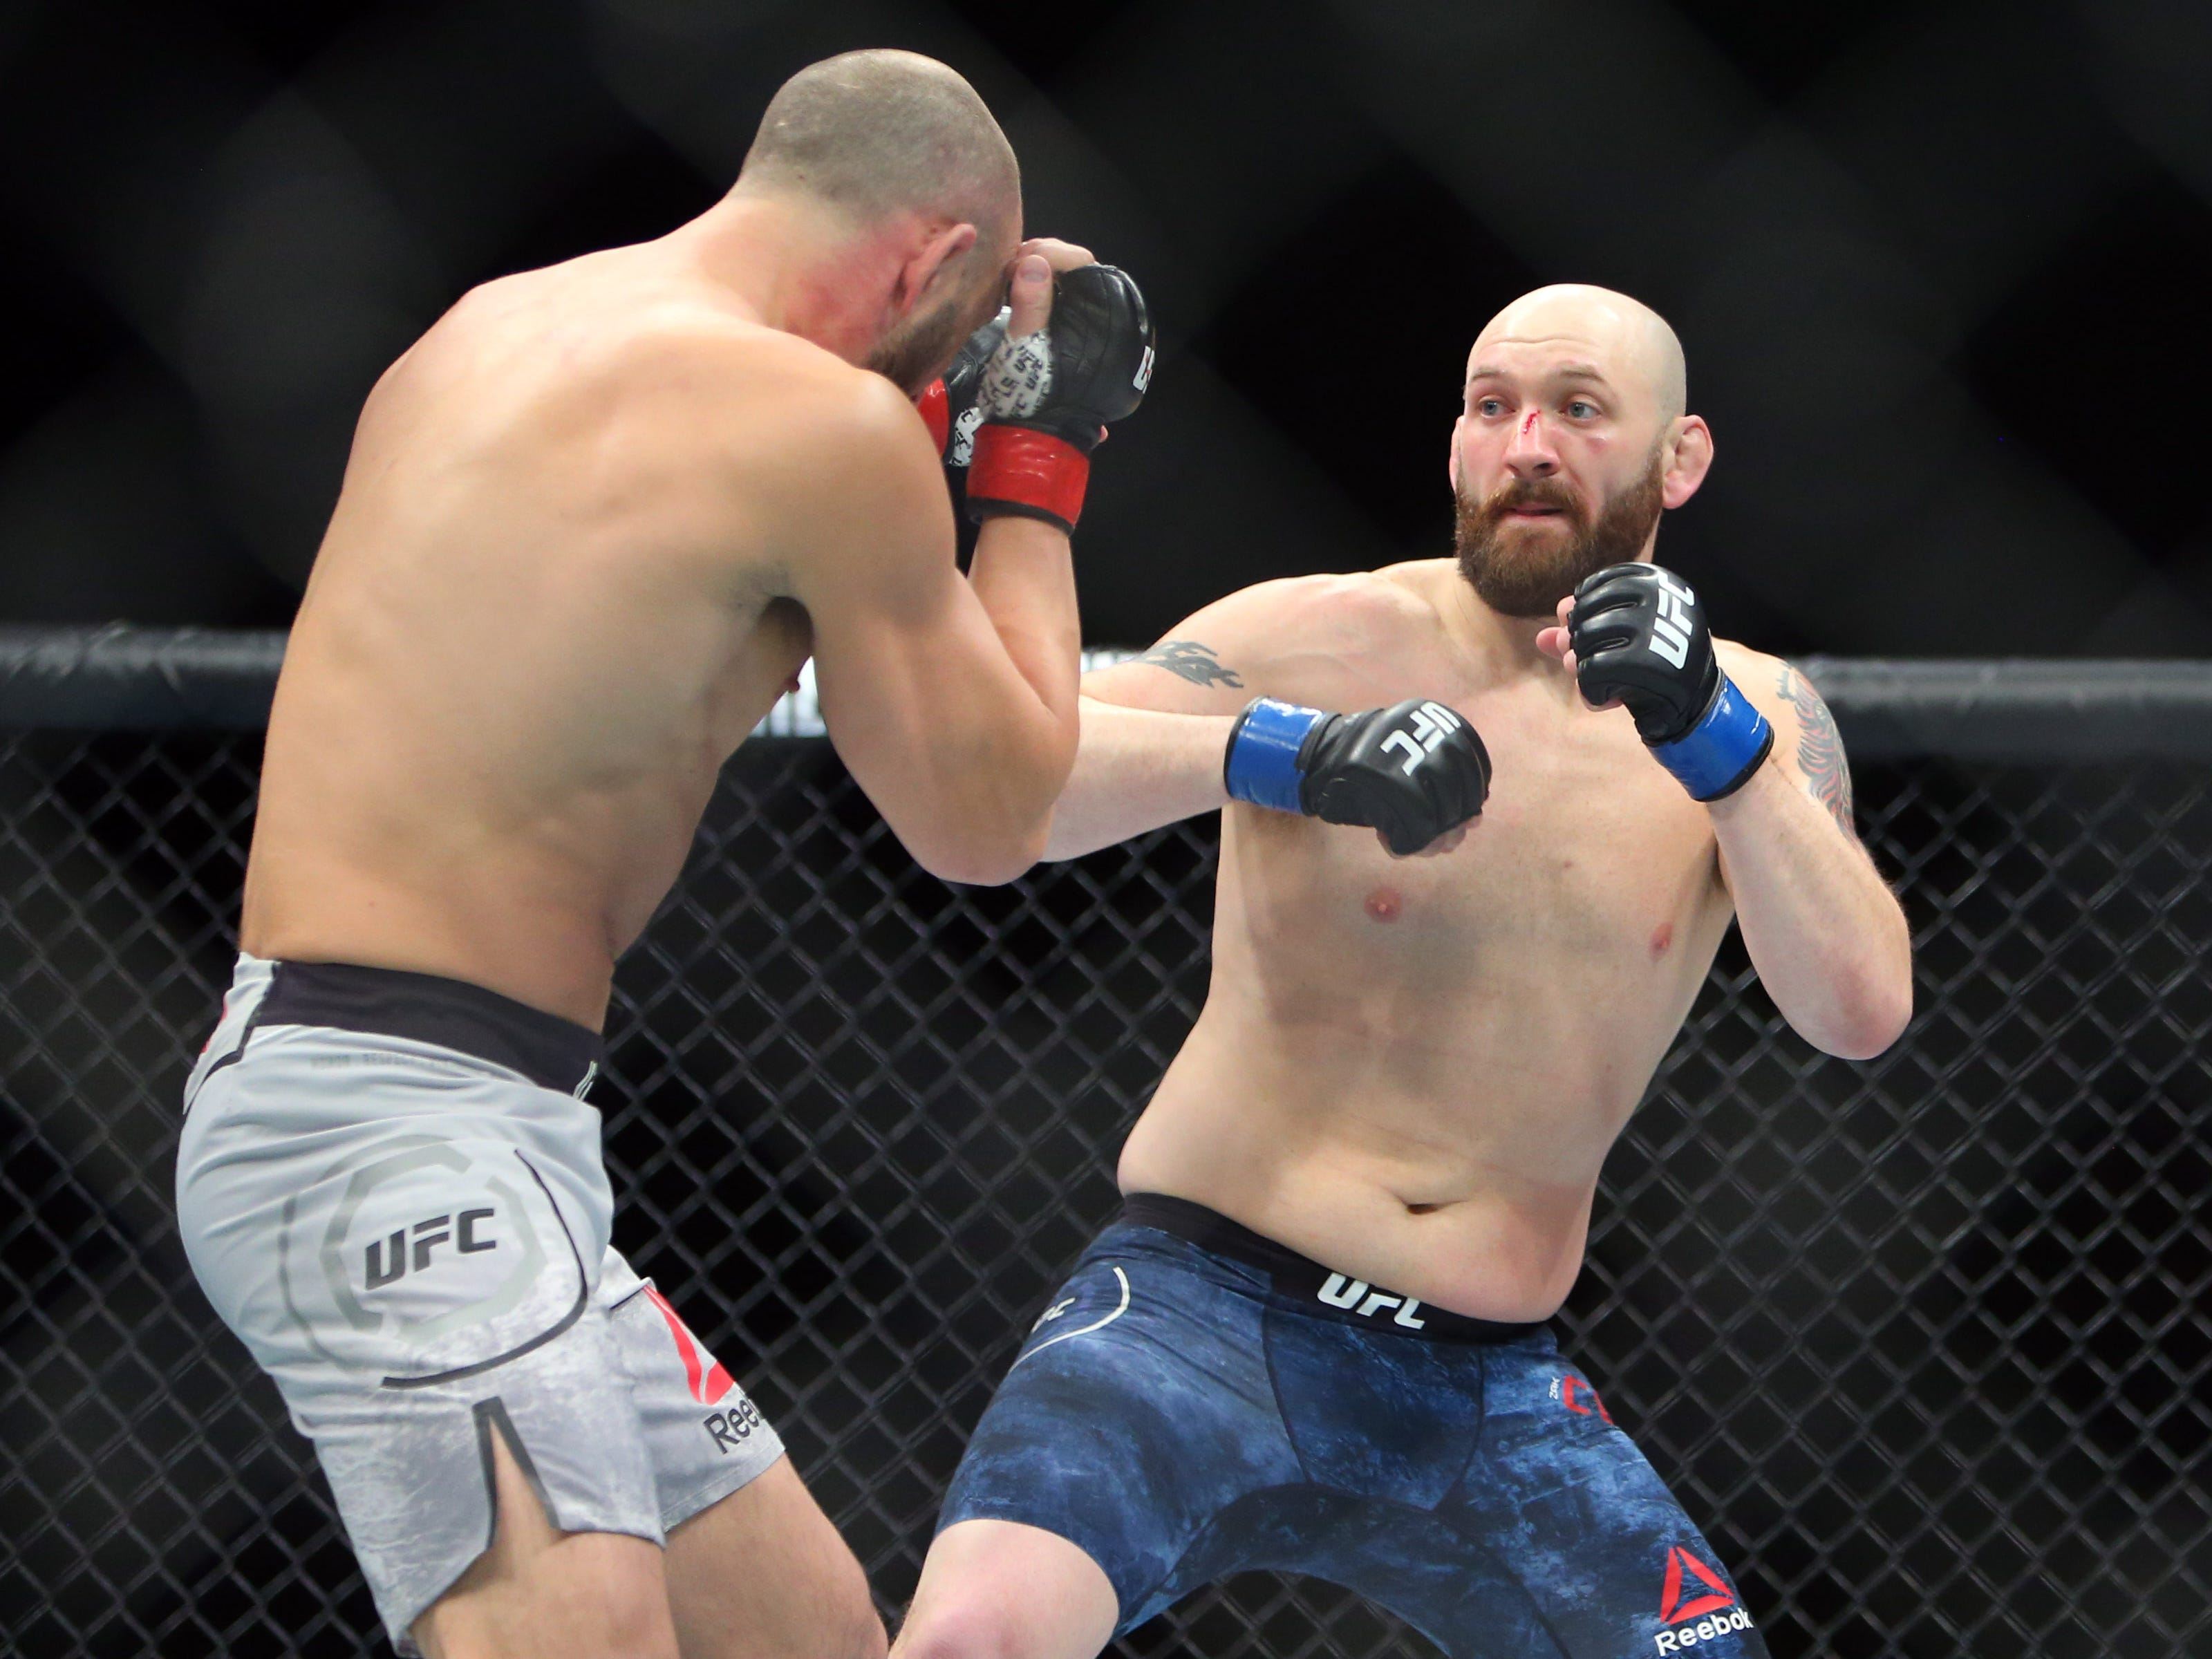 Trevor Smith (red gloves) and Zak Cummings (blue gloves) during UFC Fight Night at Fiserv Forum. Cummings is scheduled to fight Trevin Giles on May 18 in Rochester.